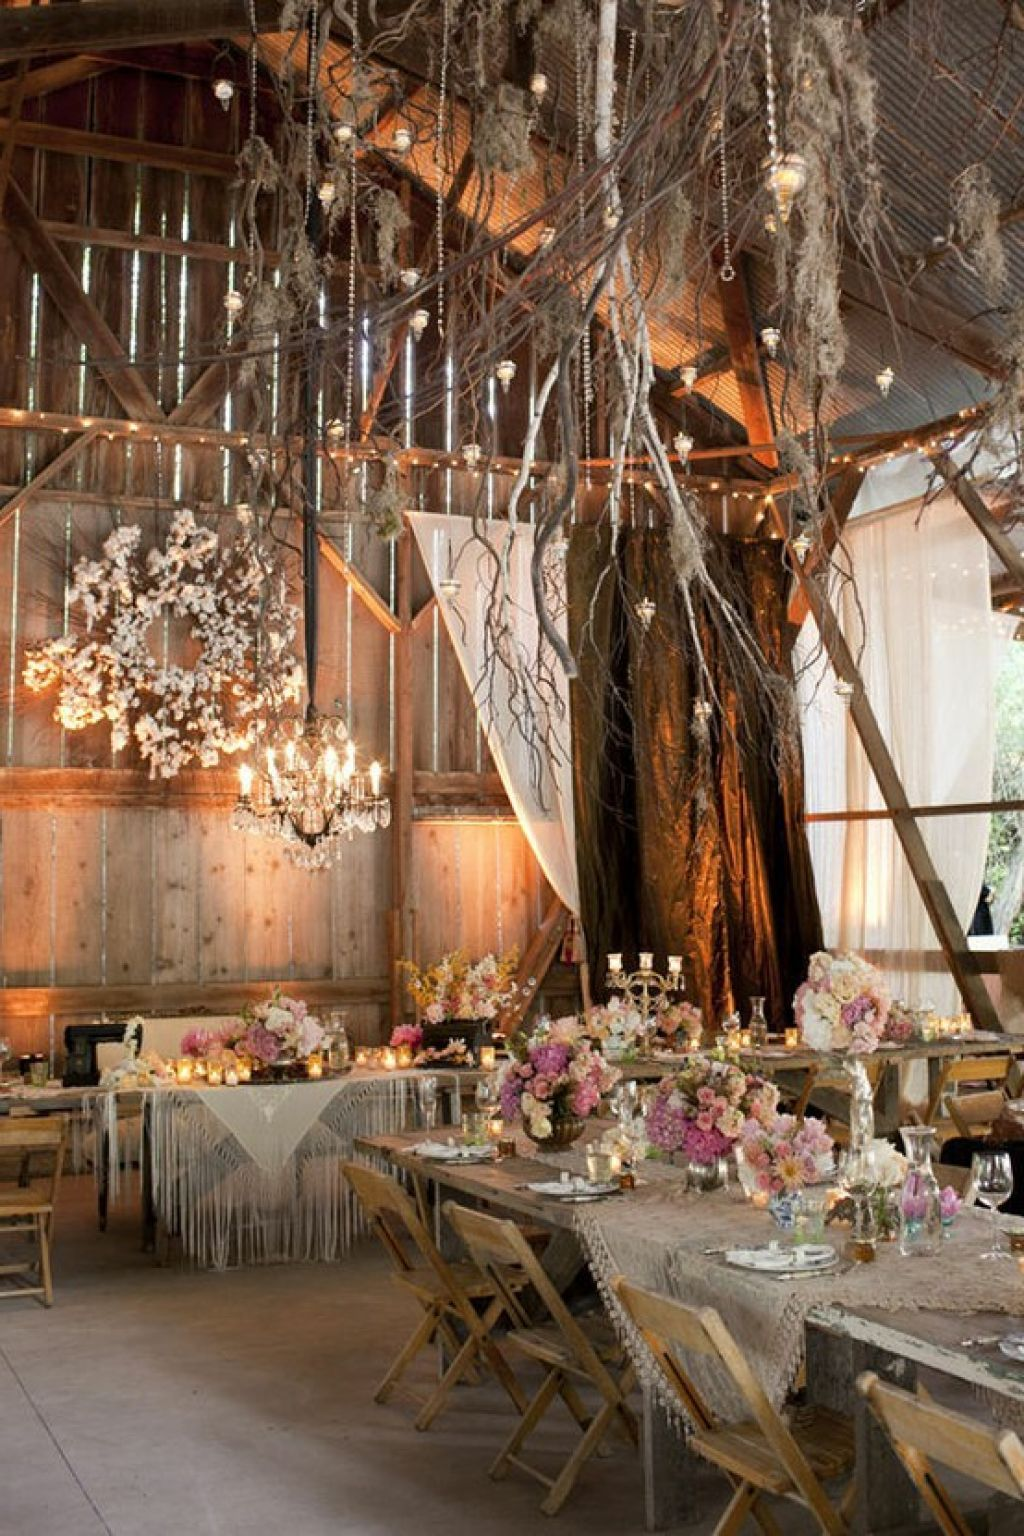 Barn Wedding Decorations Ideas On With 30 Chic Rustic Tree Branches 10 The Best Image Gallery In World